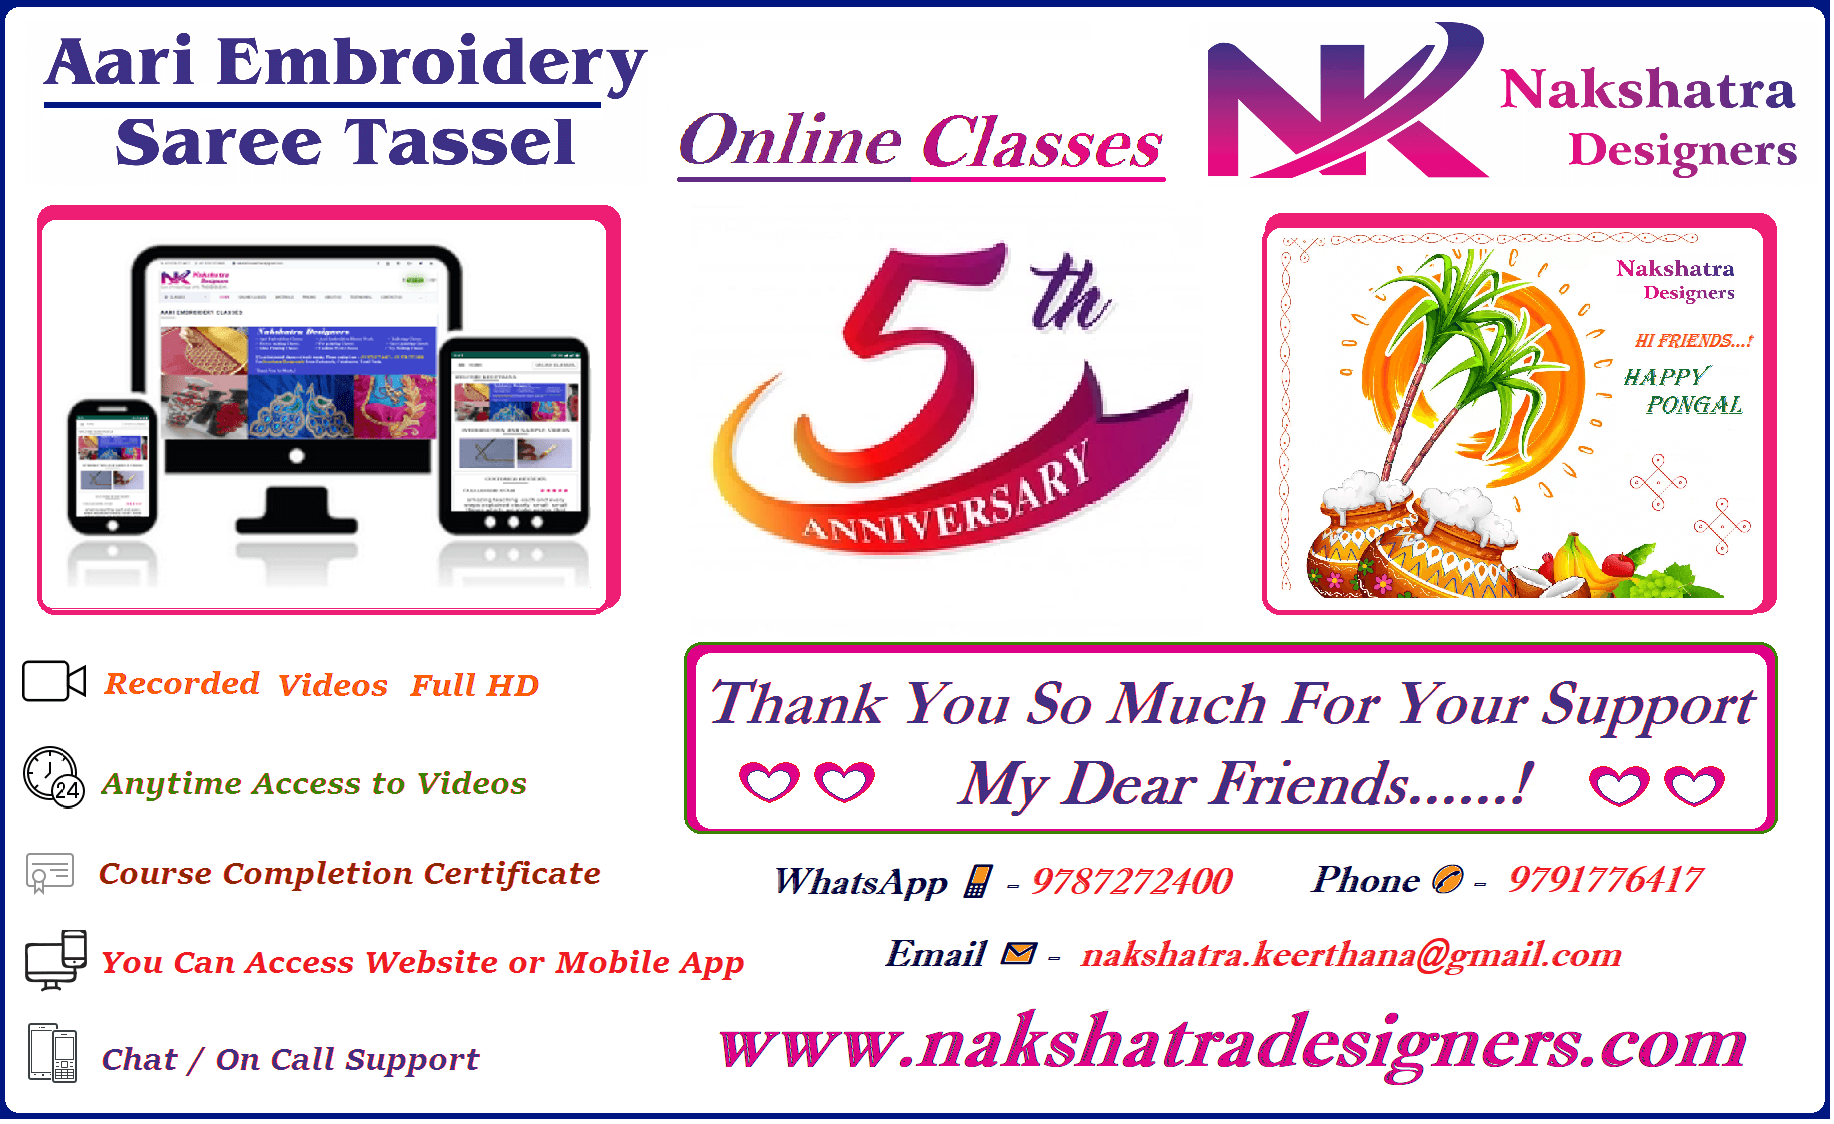 Aari Embroidery Online Classes Nakshatra Designers